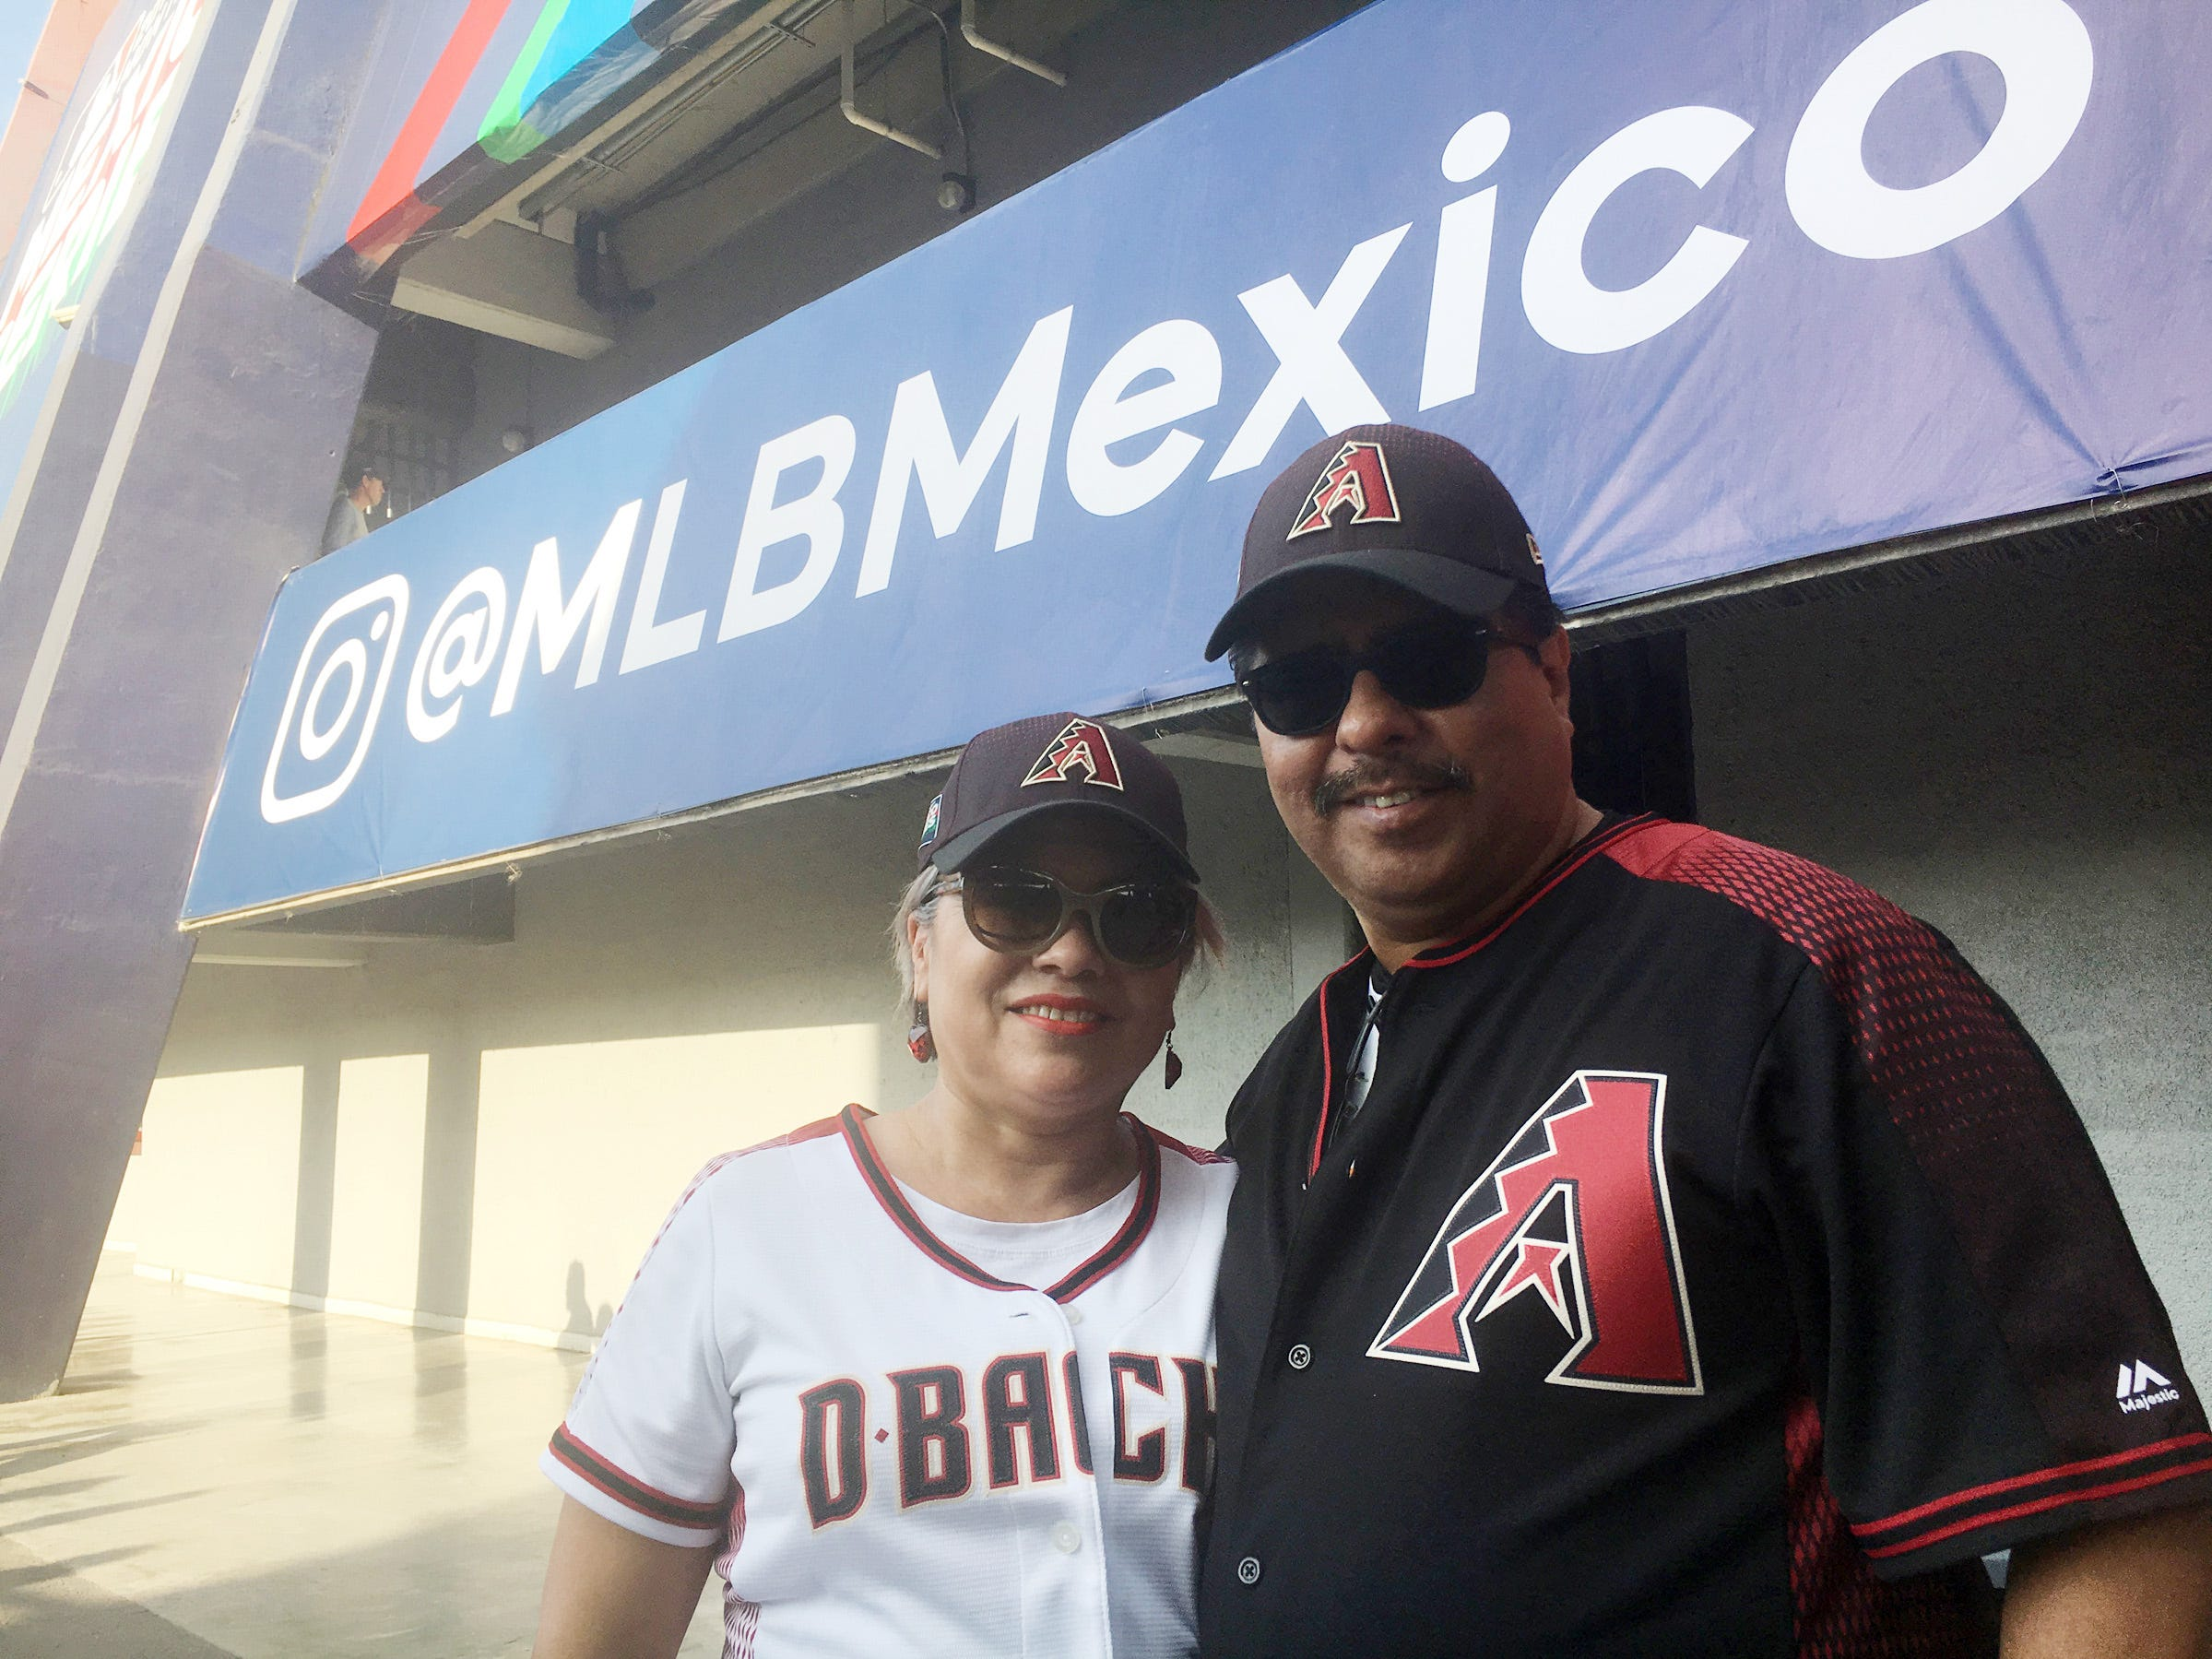 Gelacio Ramirez, 52, and his wife, Adriana Ramirez, 53, of Monterrey, Mexico, became Diamondbacks fans because Adriana liked their uniforms. They attended two spring training games in Monterrey between the Diamondbacks and the Colorado Rockies.